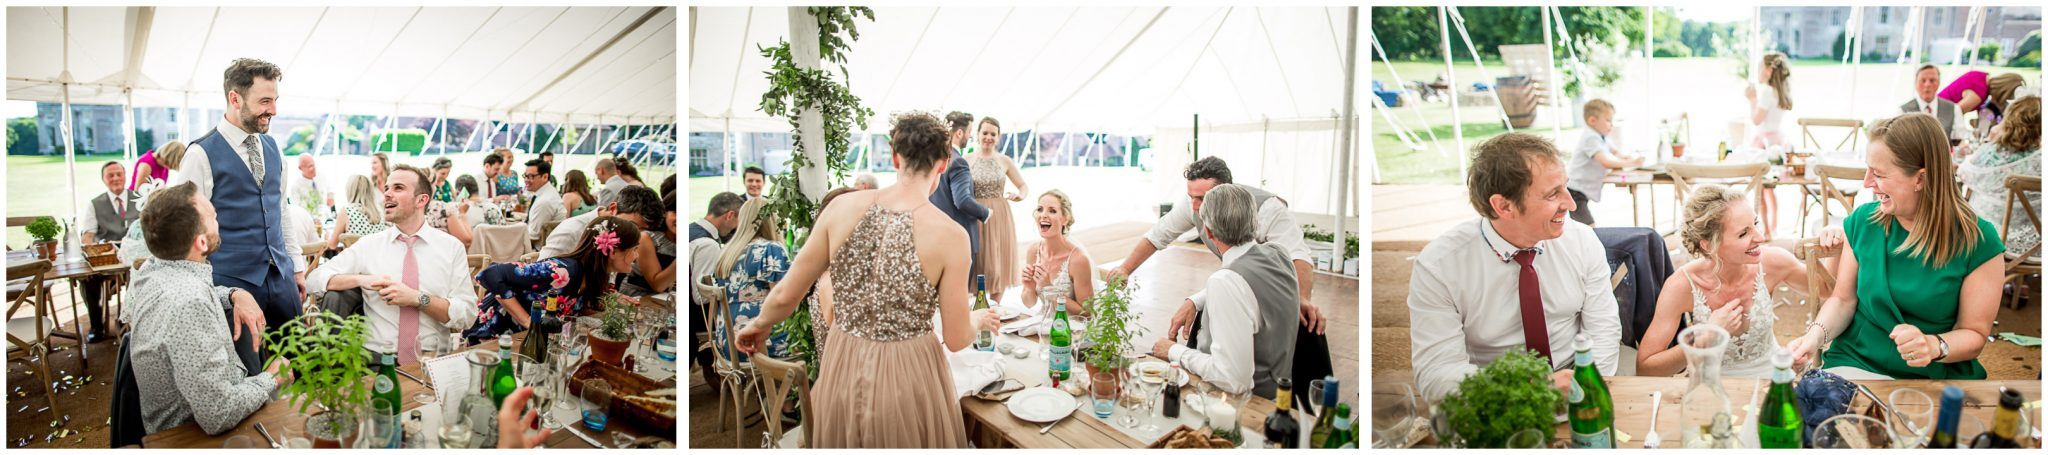 Bride and groom spend time with their wedding guests